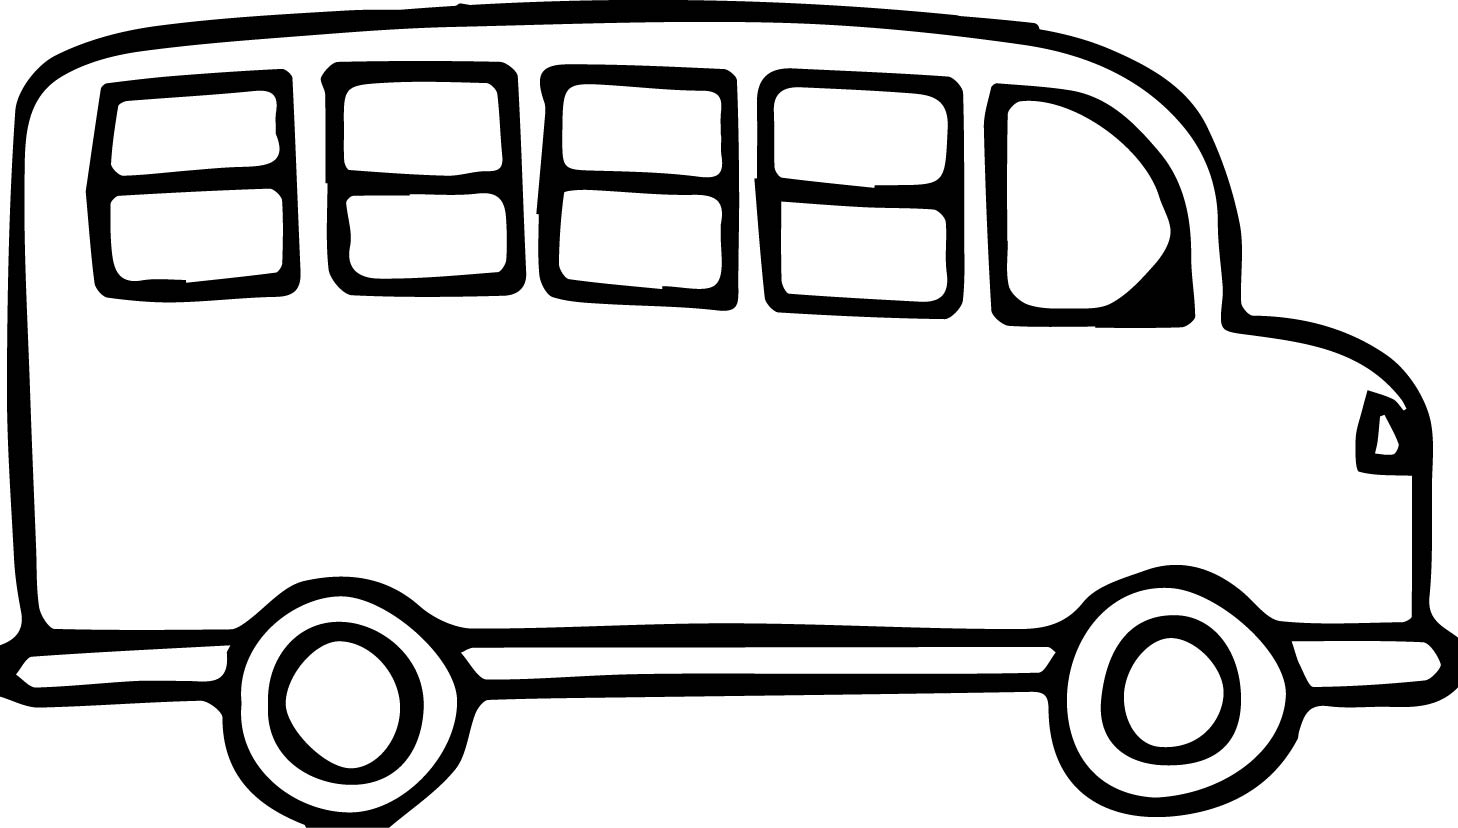 free Free download best . Bus black and white clipart.